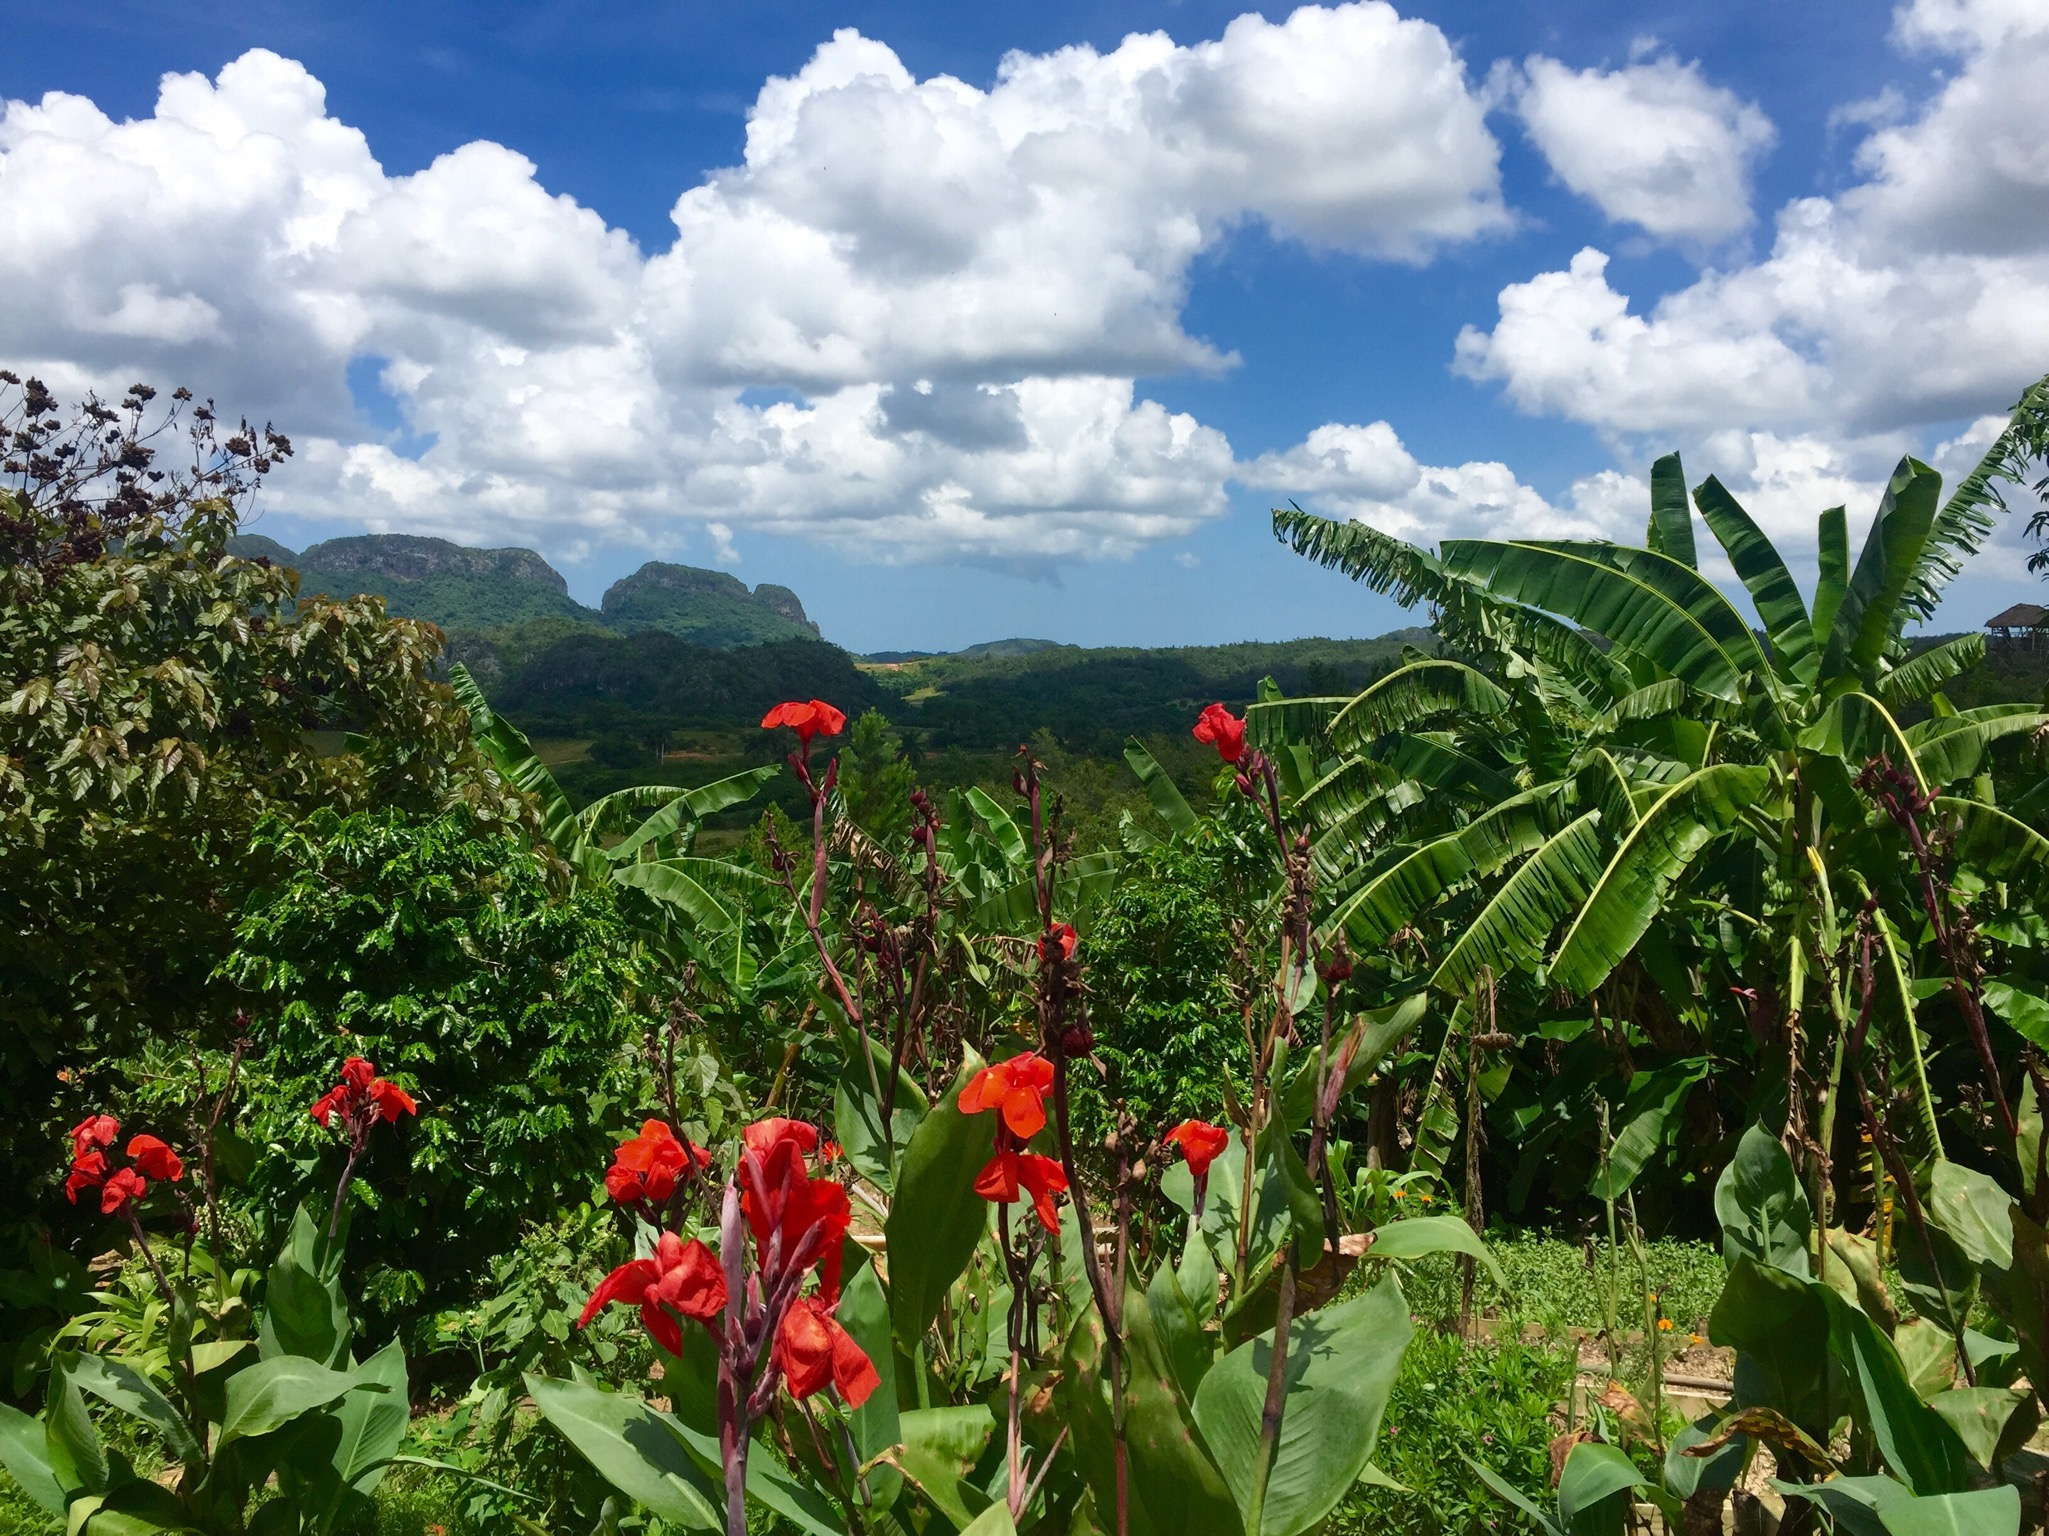 drop everything and head to Viñales